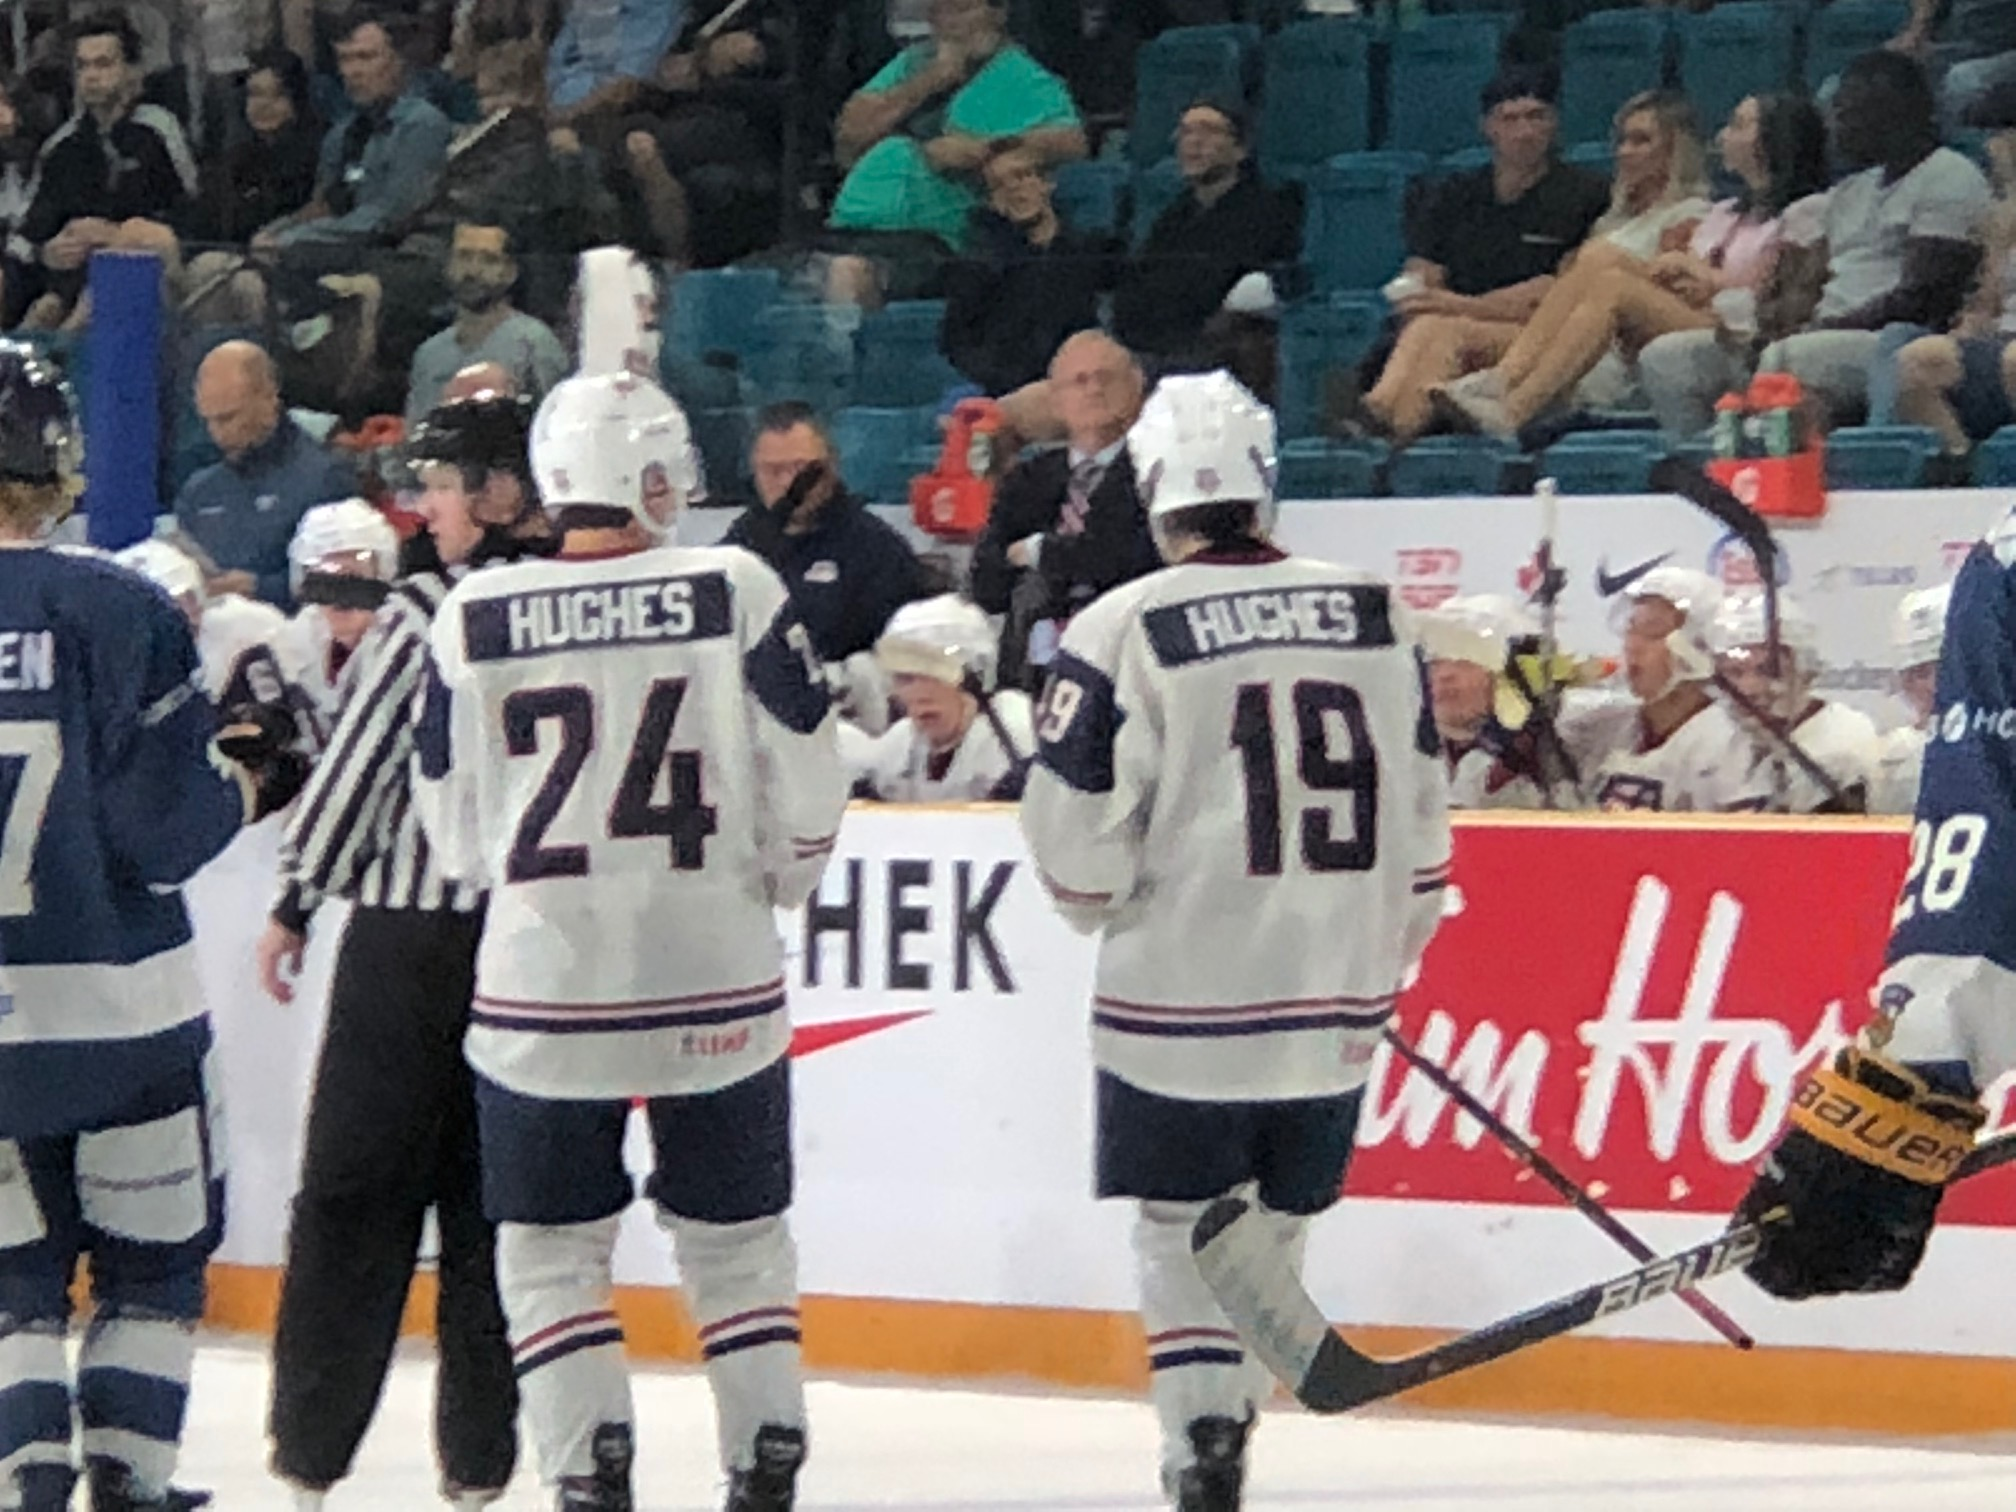 Hughes Brothers Dazzle Kamloops Fans